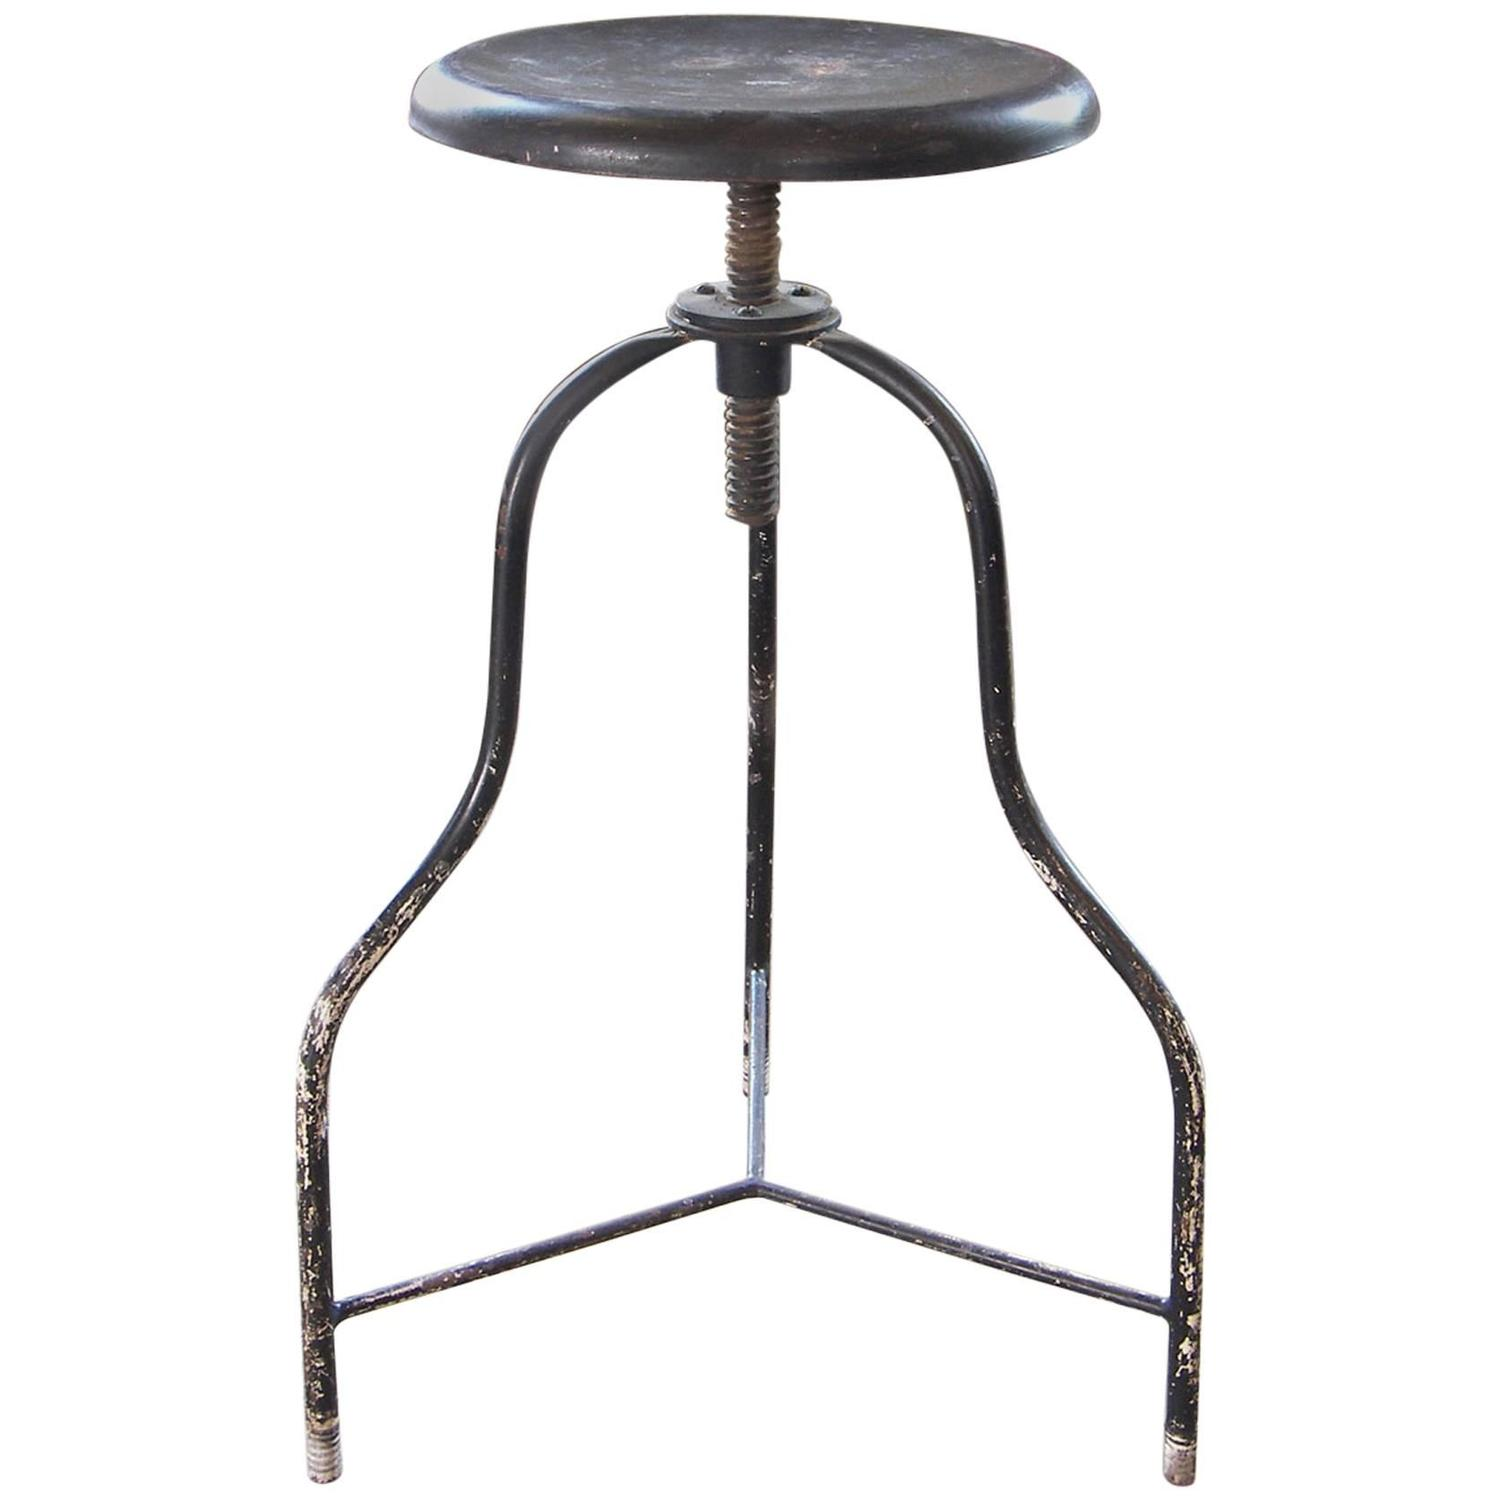 Vintage Black Metal Medical Stool with Three Legs Adjustable Seat Height For Sale at 1stdibs  sc 1 st  1stDibs & Vintage Black Metal Medical Stool with Three Legs Adjustable Seat ... islam-shia.org